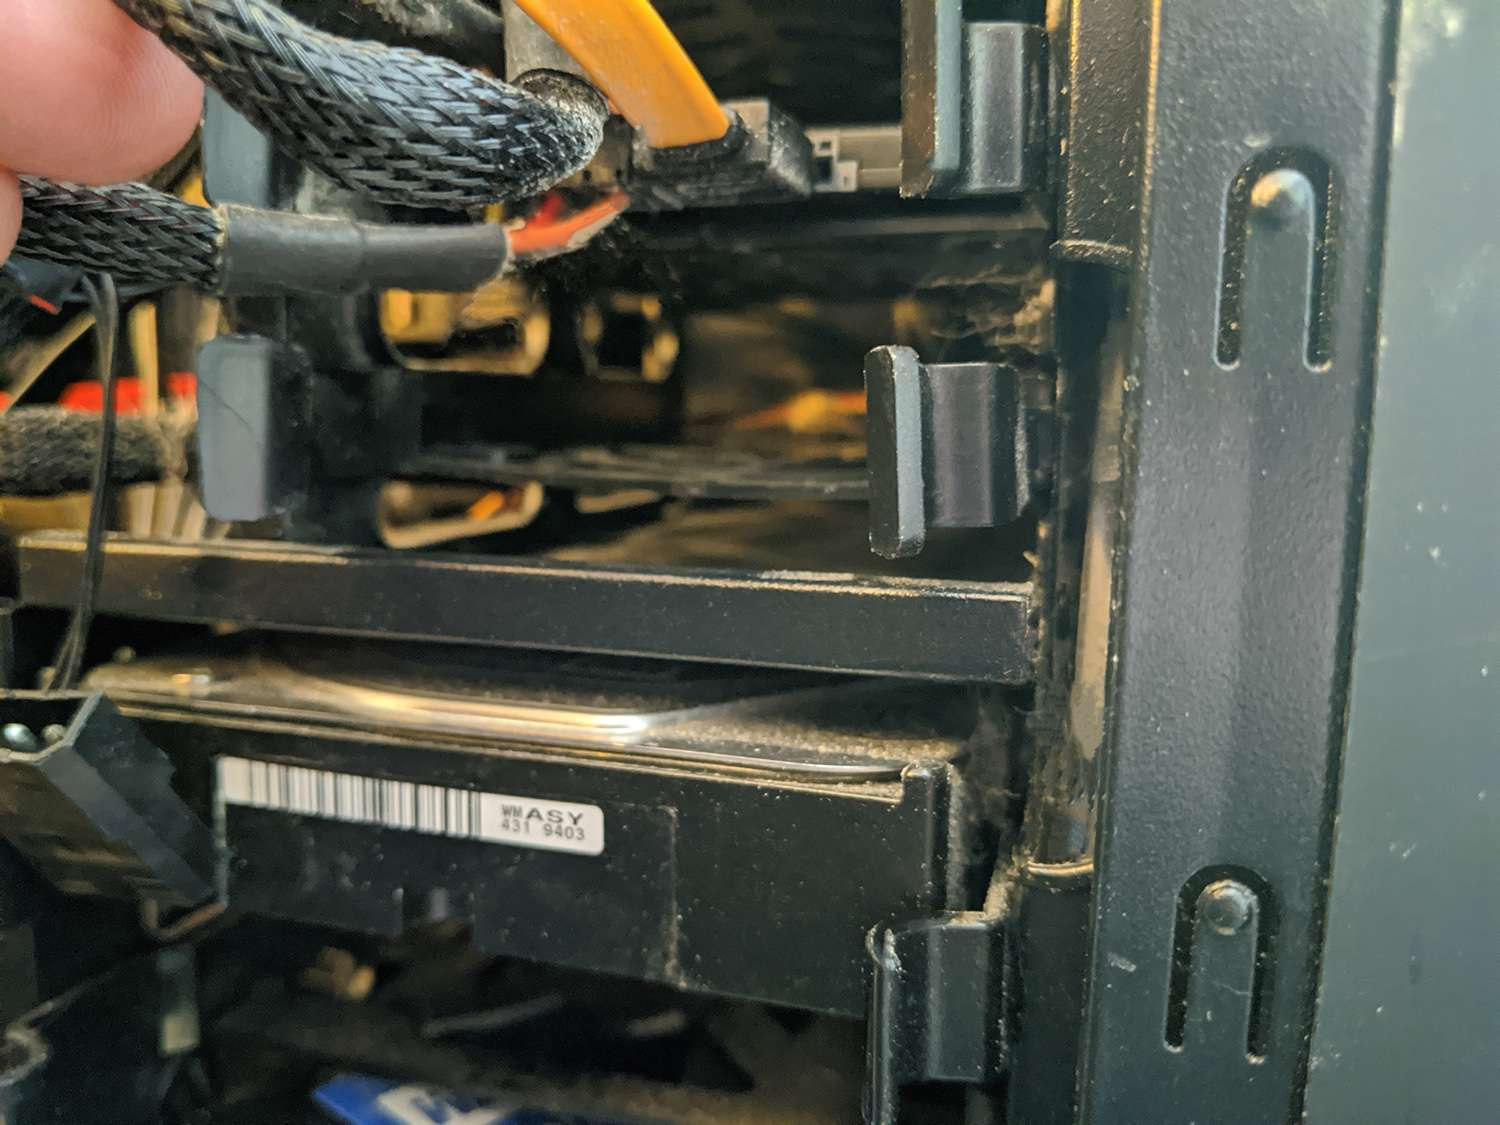 An open drive bay in a PC.